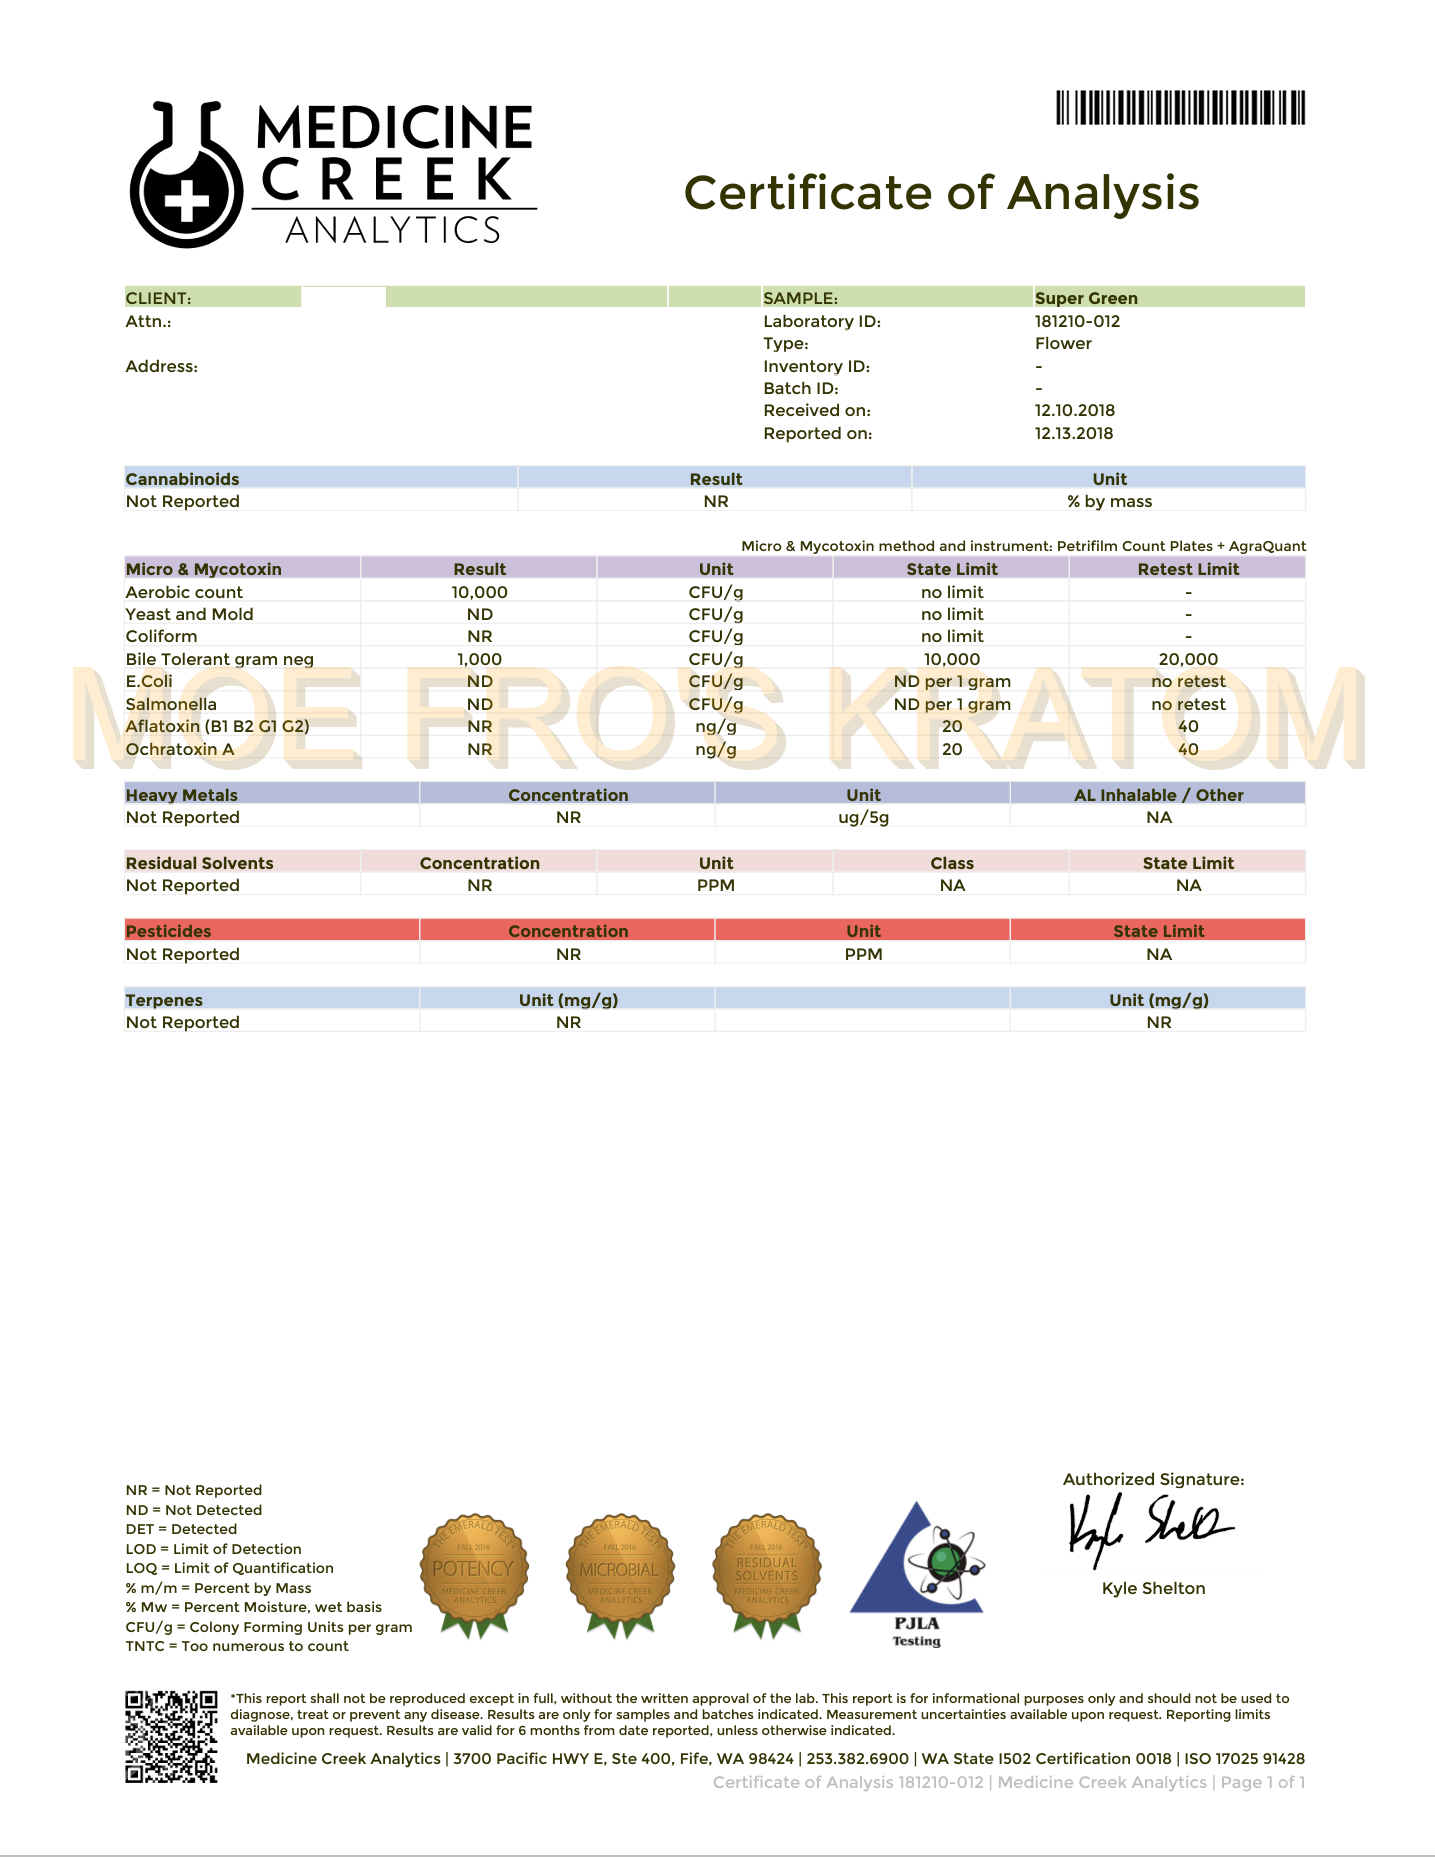 We have a new lab report showing our Kratom is pure with no